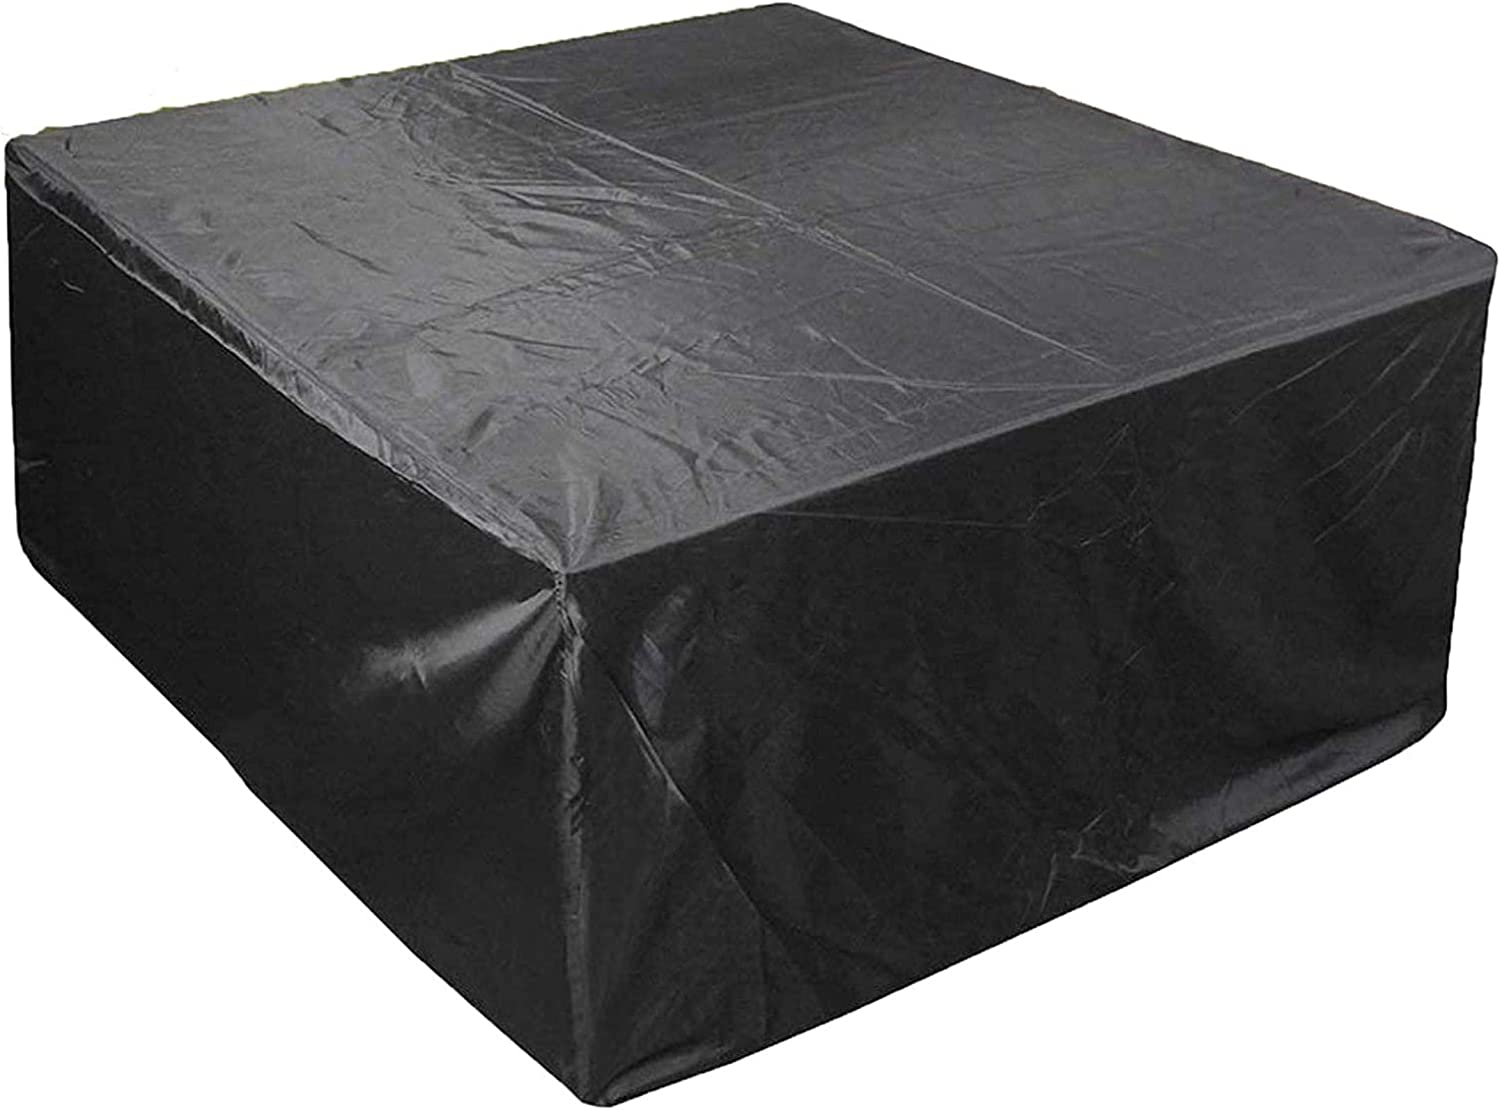 WHCQ Garden Furniture Covers Table Manufacturer OFFicial shop Cover Waterproof Hea 35% OFF